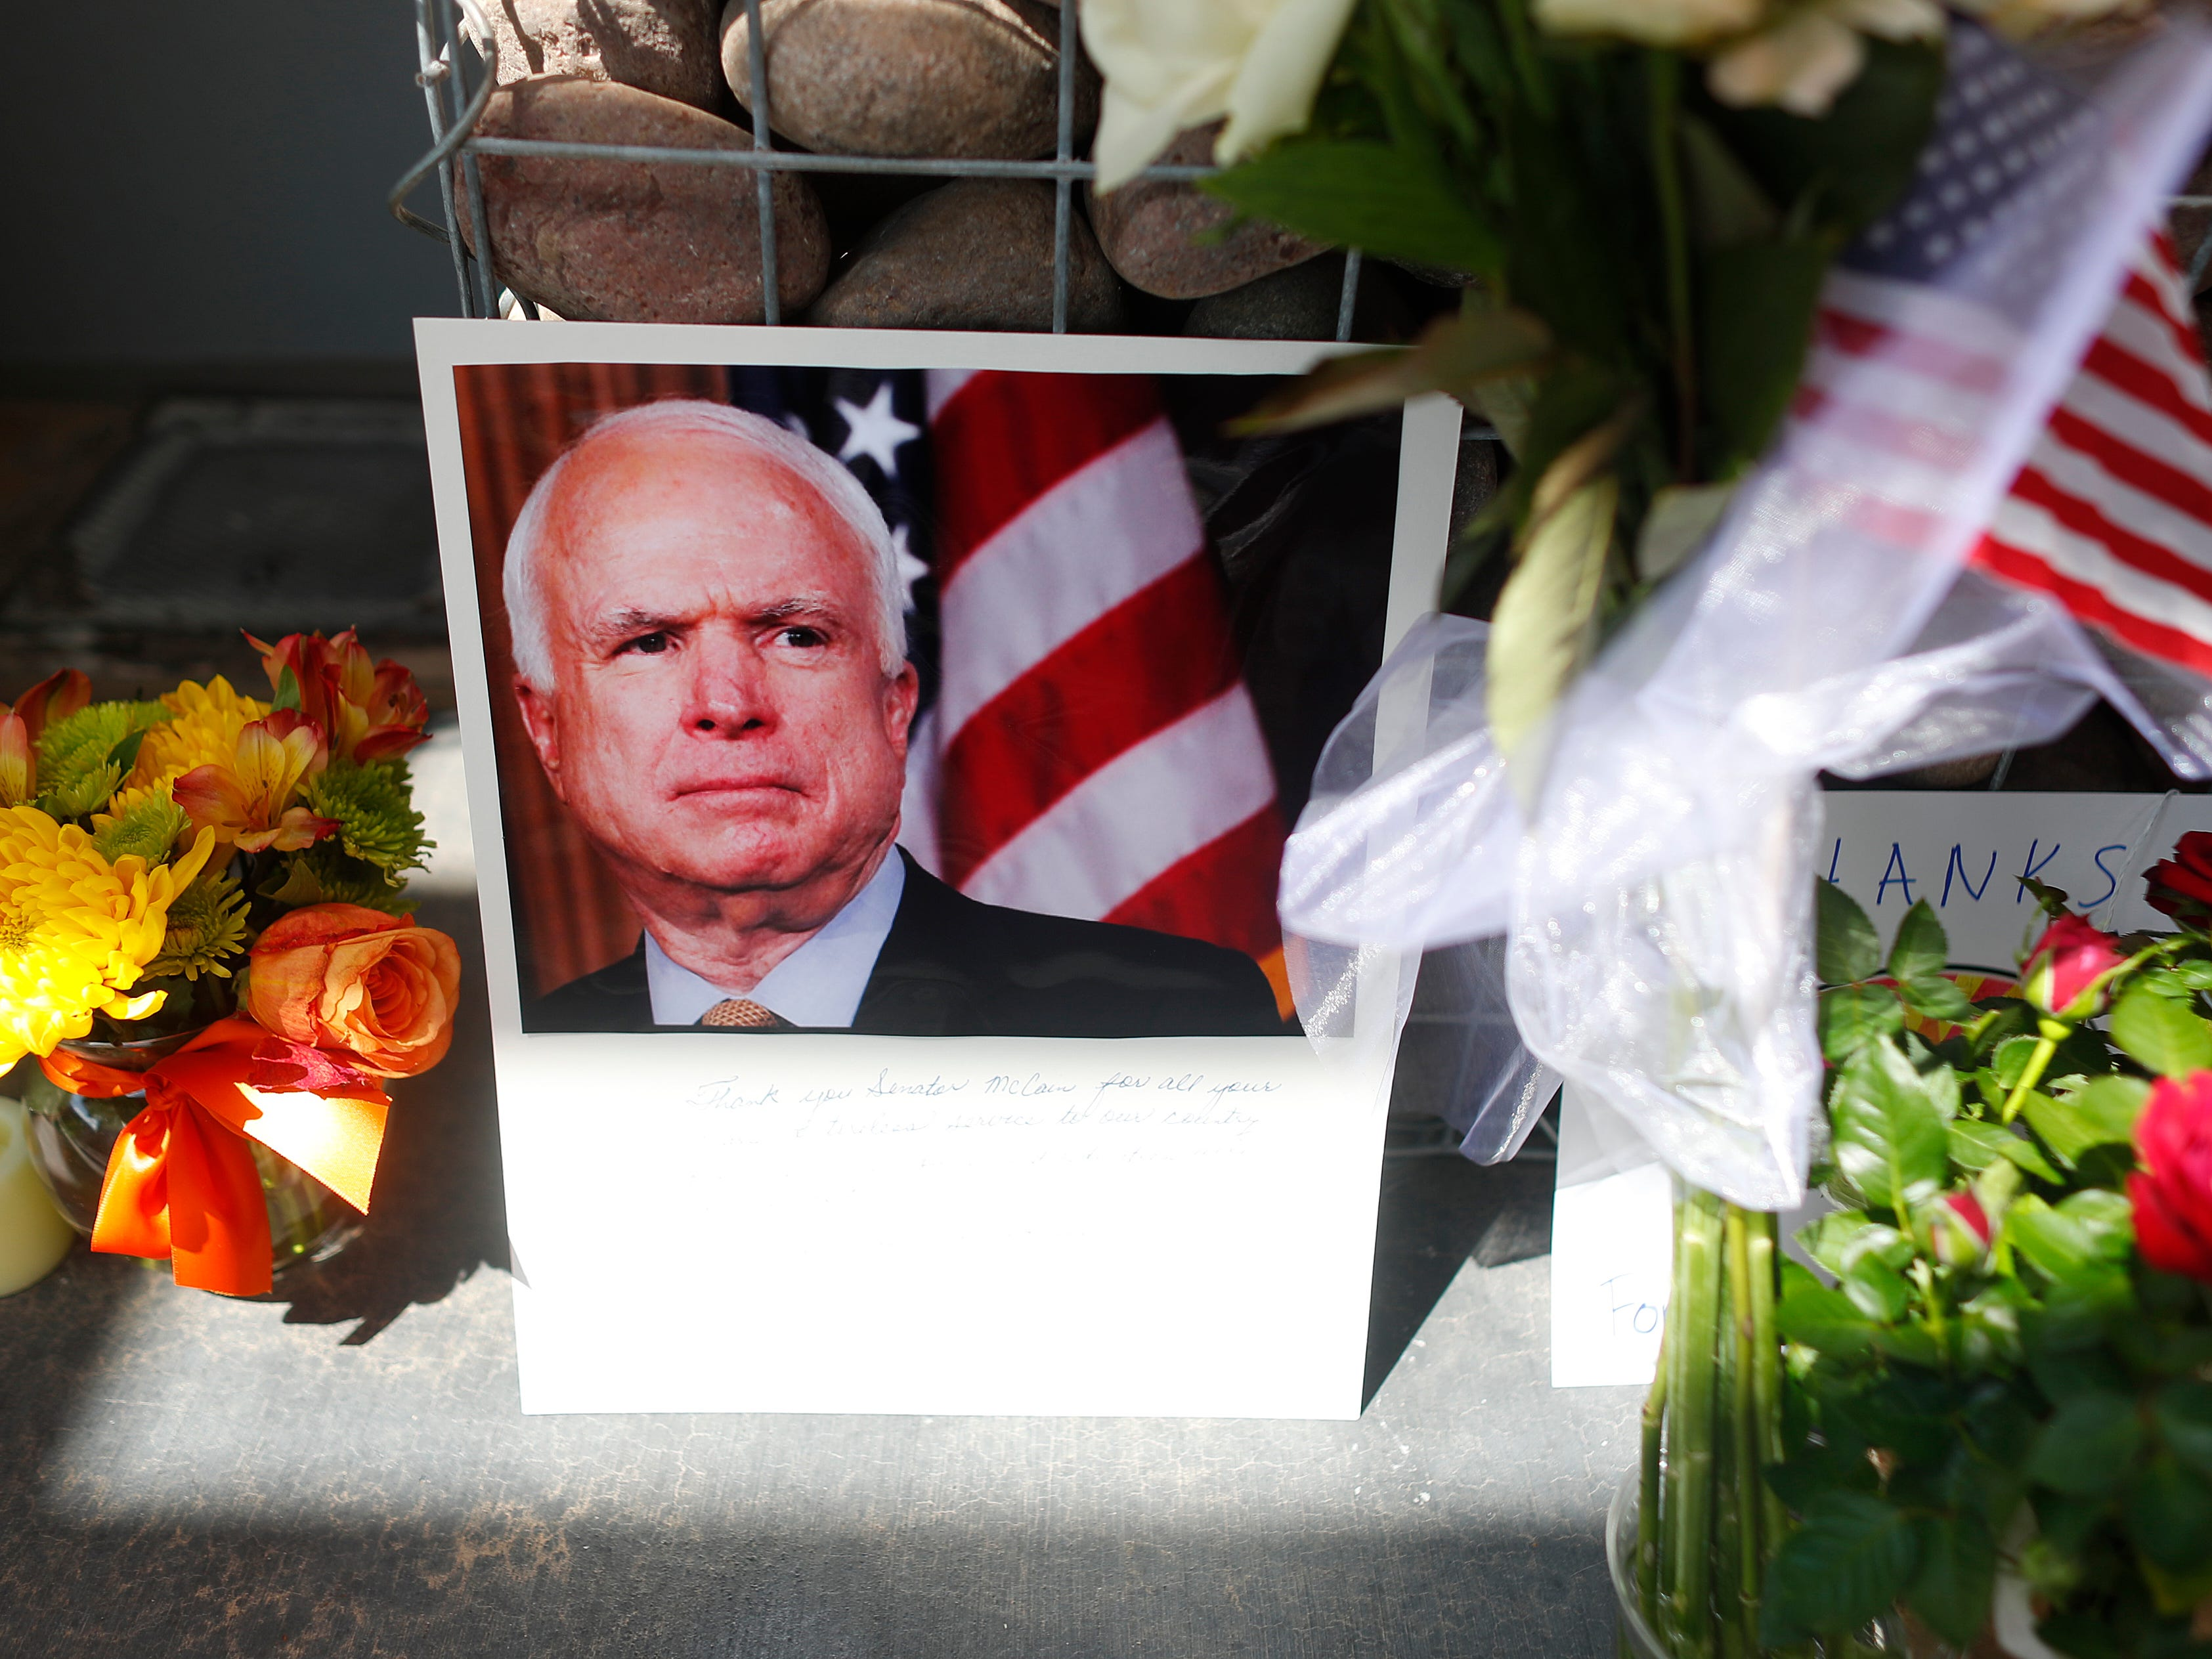 Flowers, flags and portraits of the late Sen. John McCain sit outside McCain's offices at a memorial in Phoenix on Aug. 26, 2018.